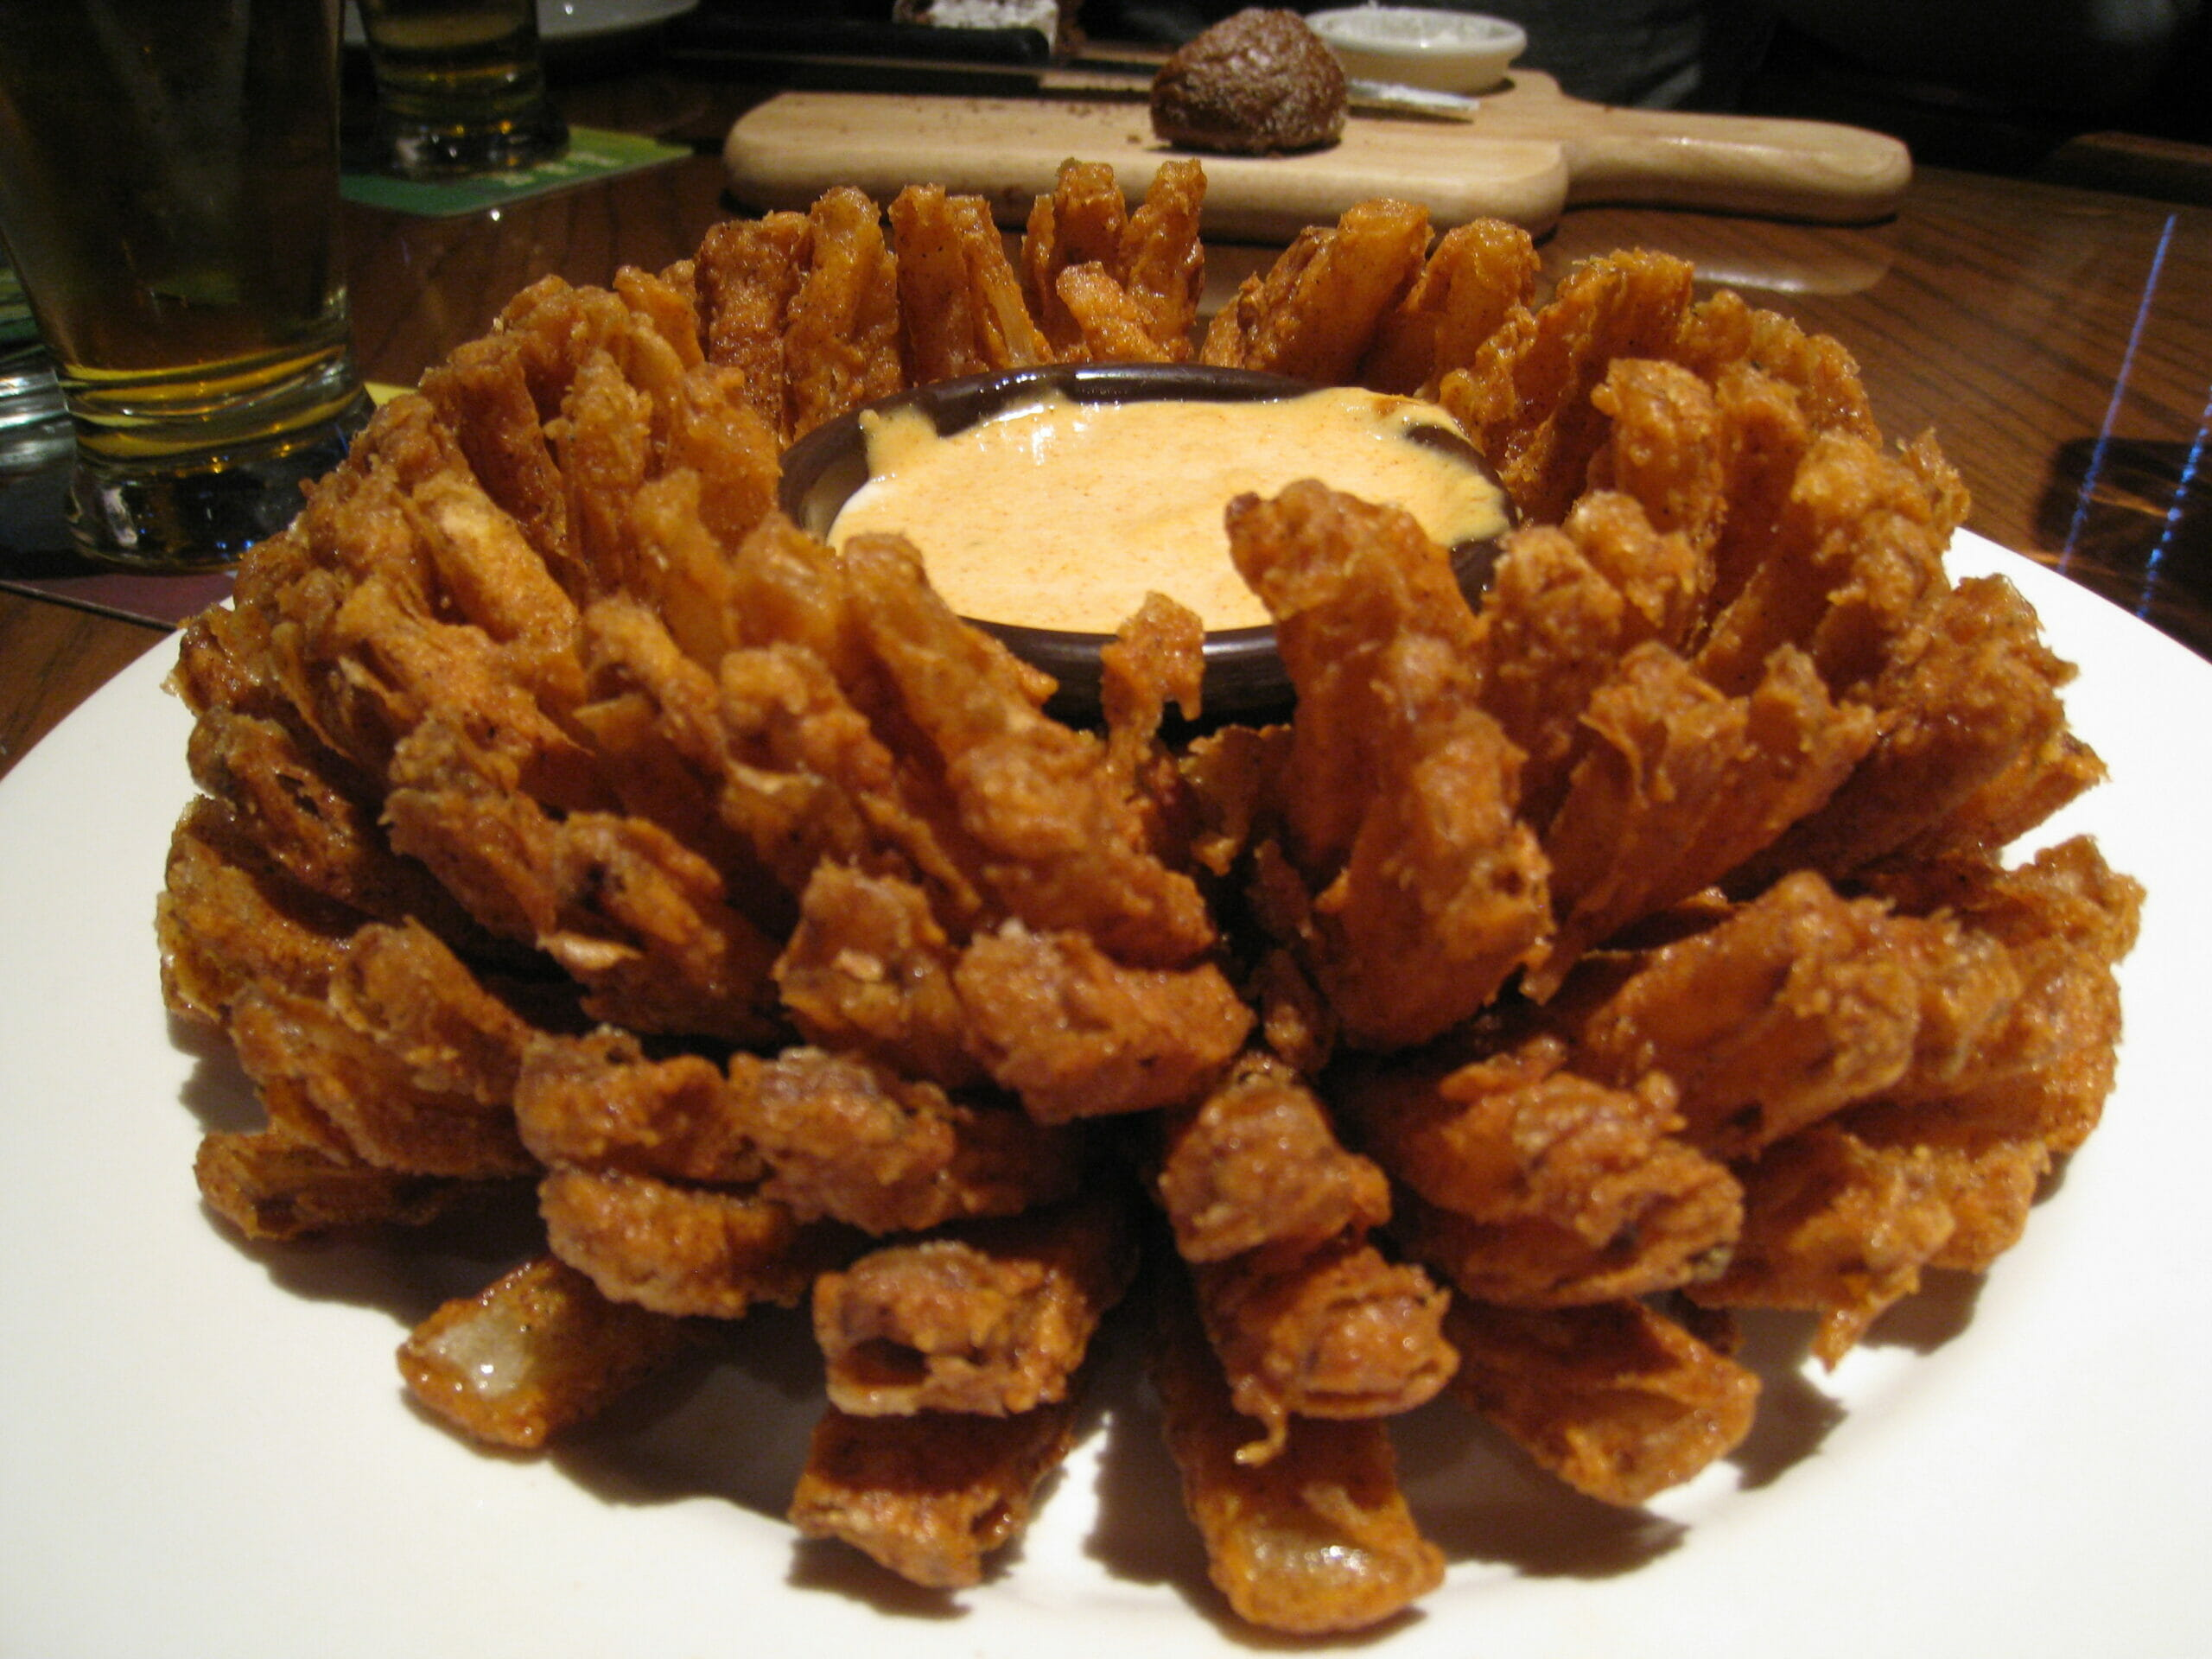 Strips of fried onion making an effect like an open flower with dip in the middle